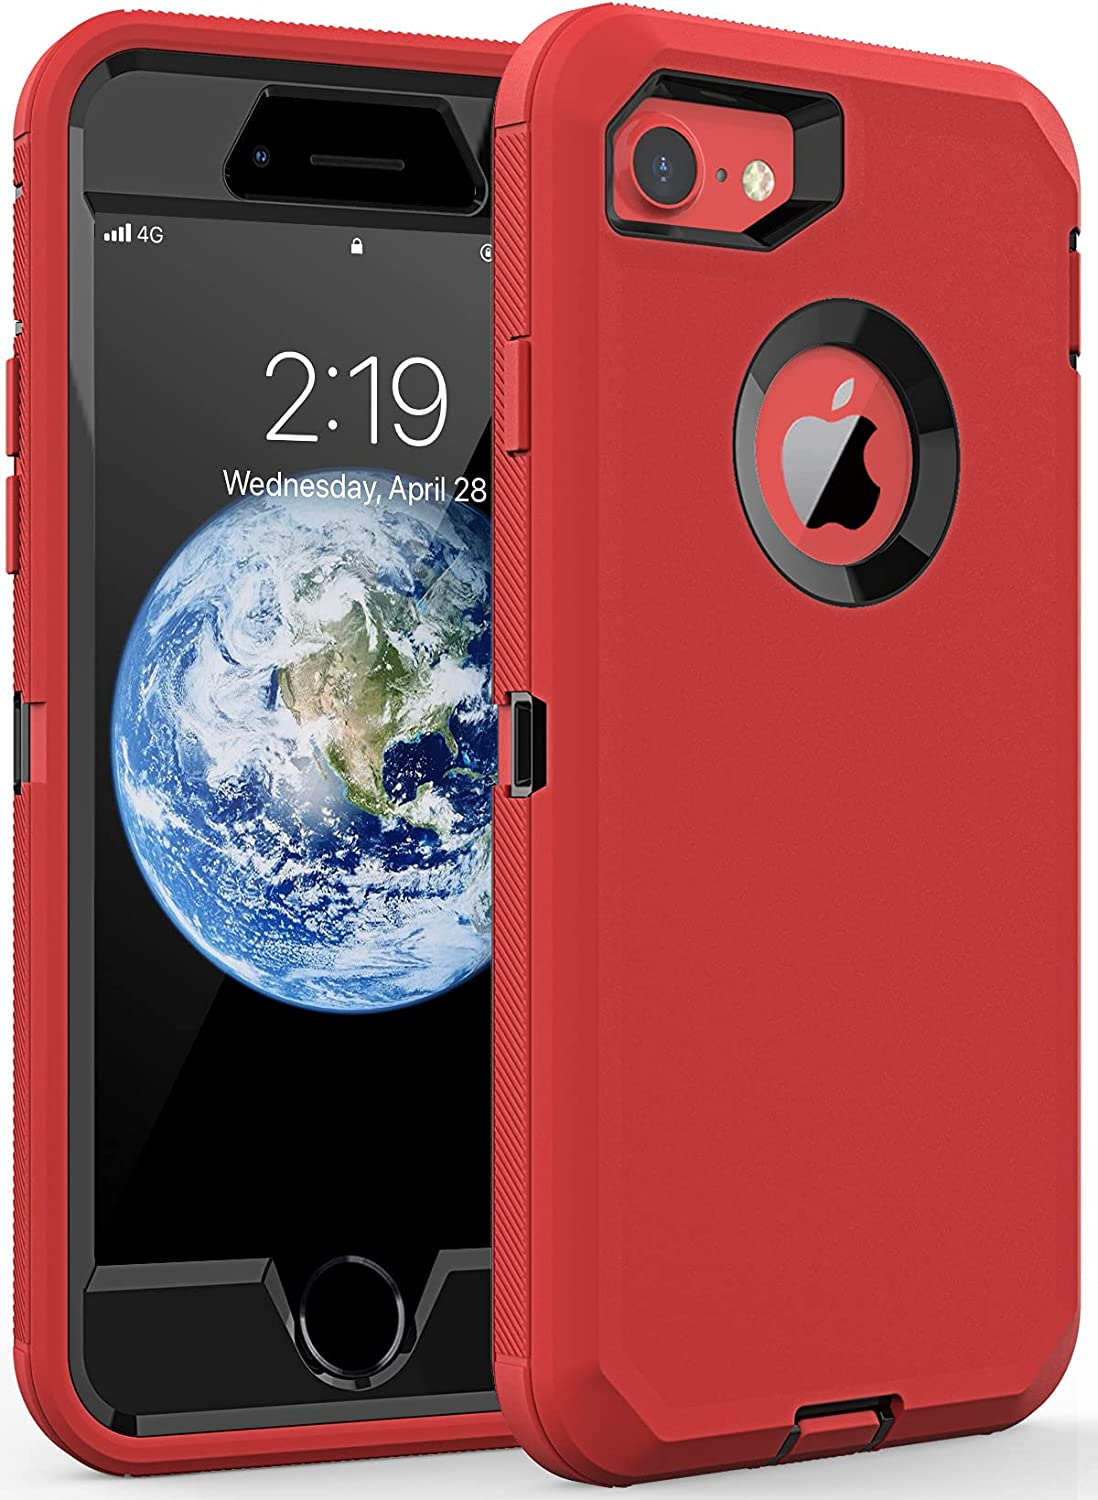 Comboproof Compatible with iPhone 8 case/iPhone 7 case,Shockproof case for iPhone 8/7(4.7 in) (Red)